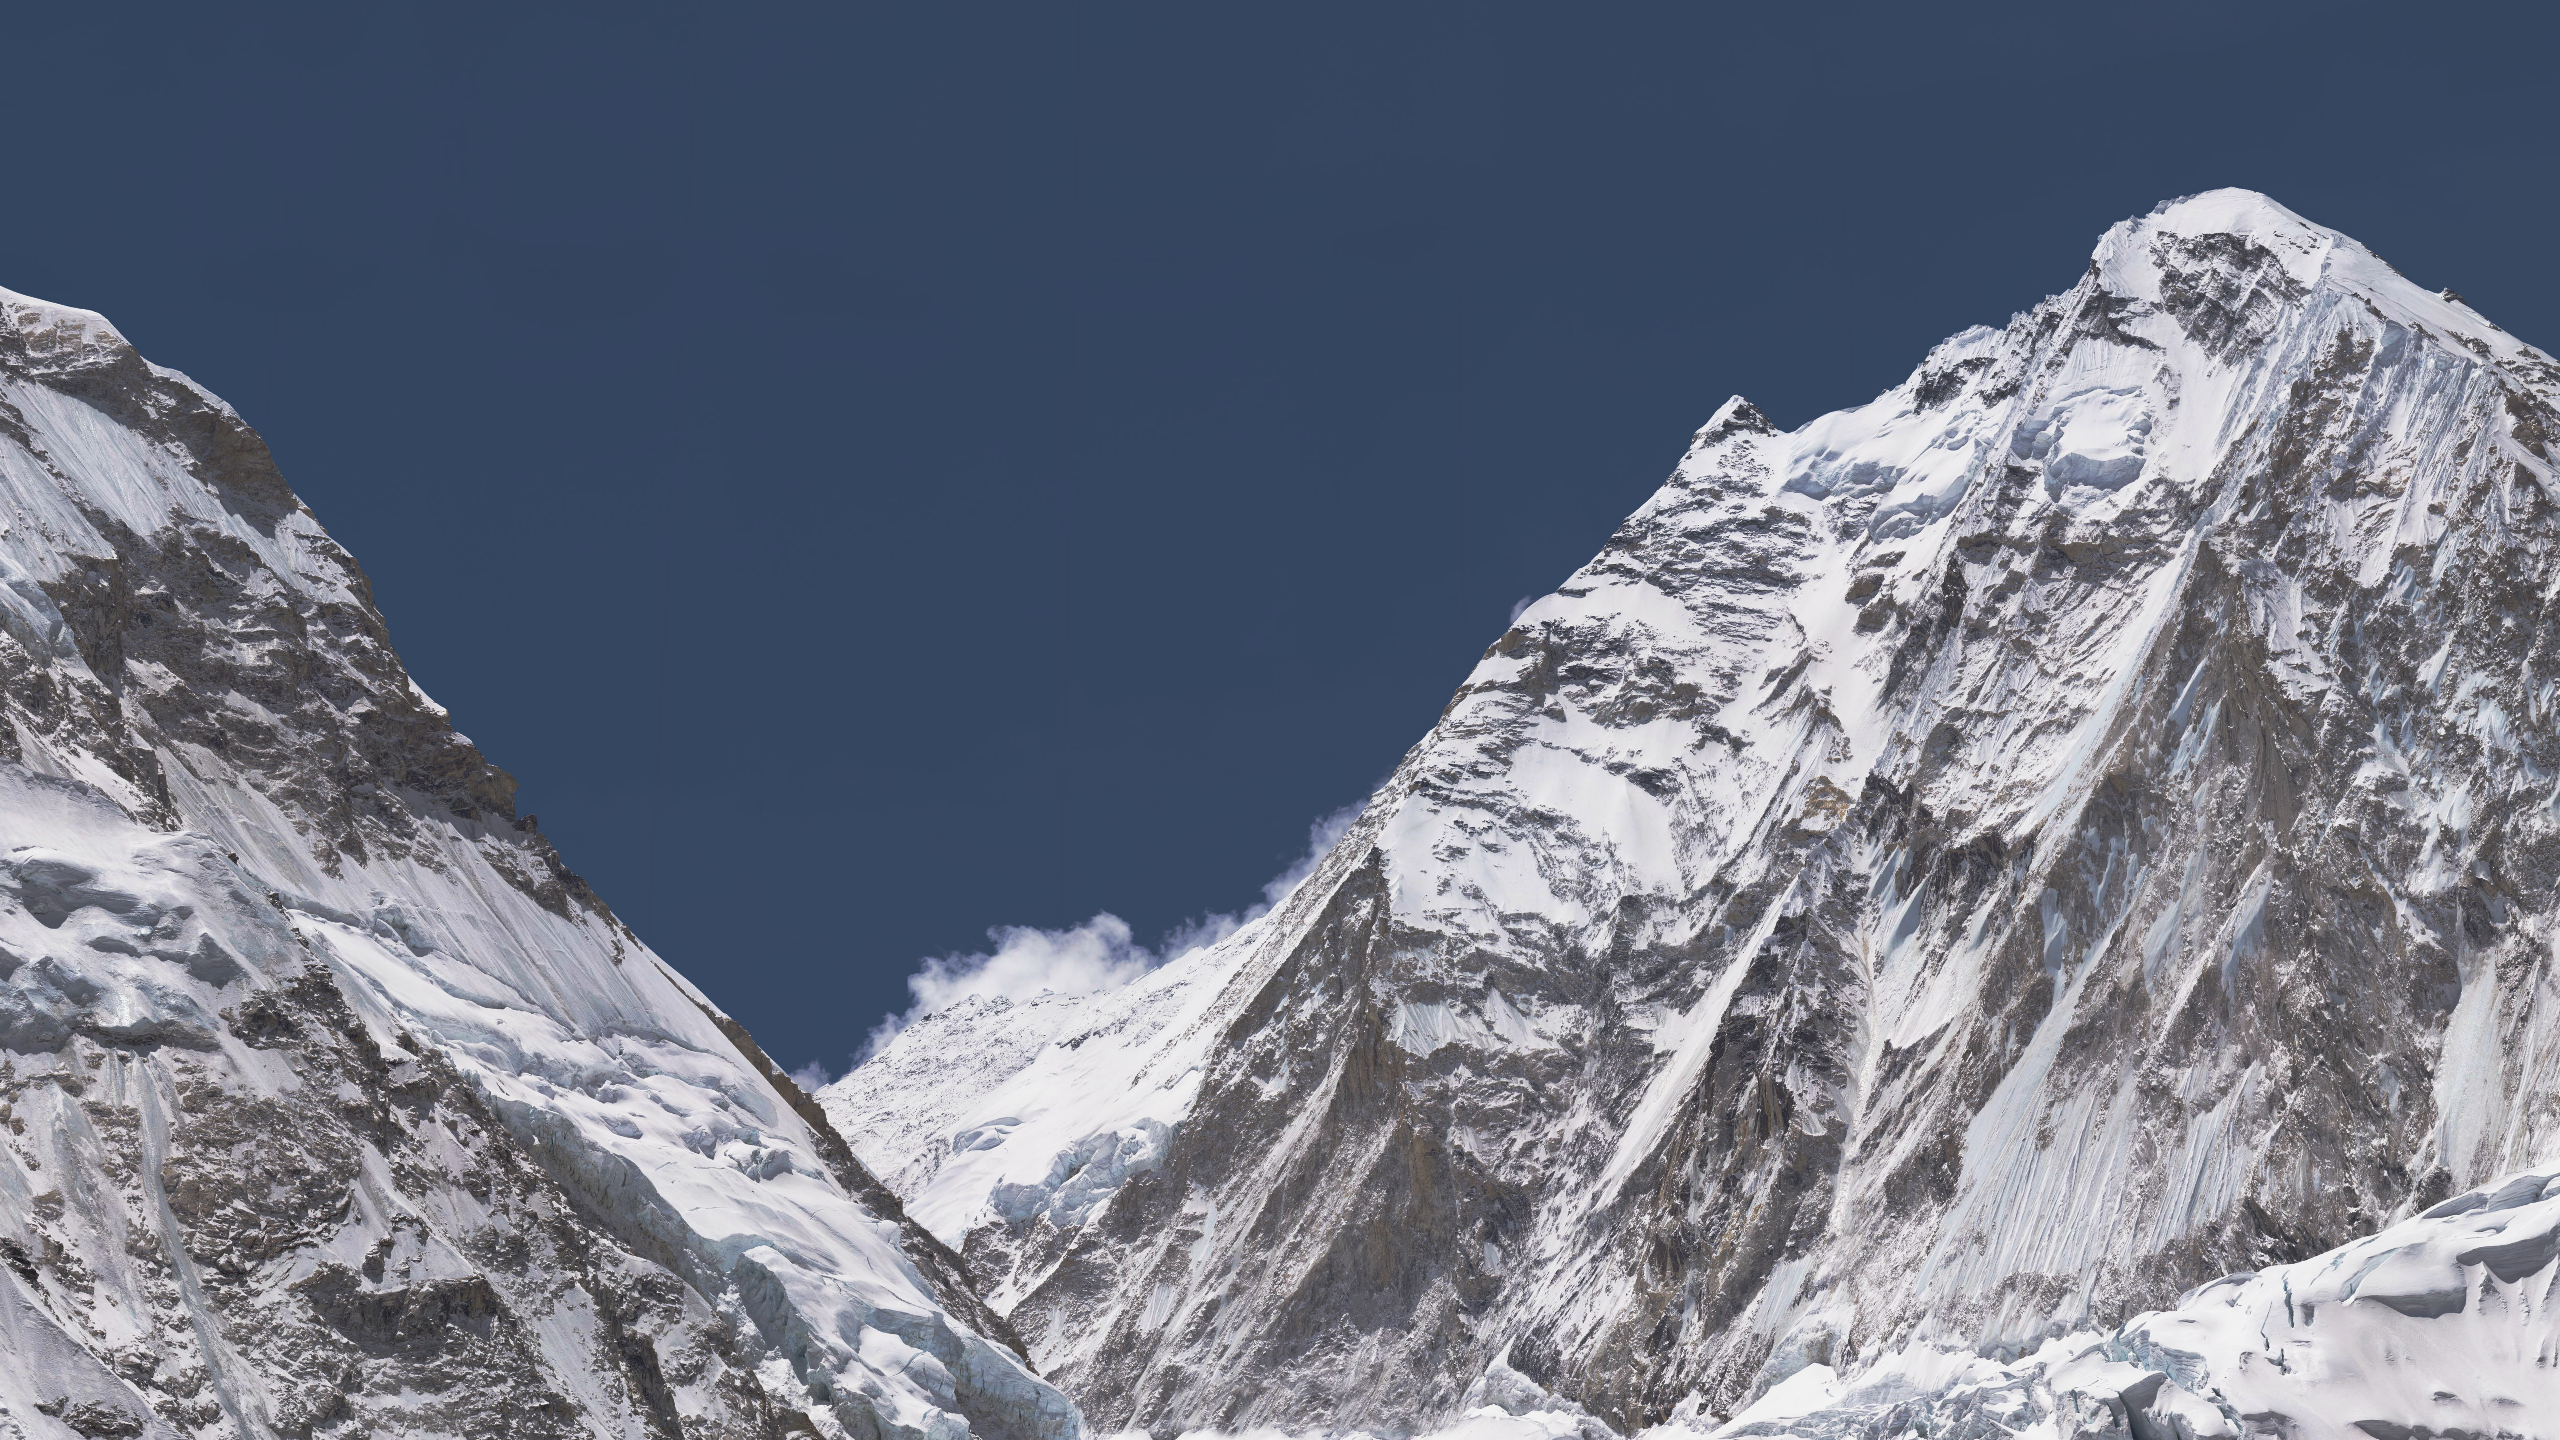 Beautiful Wallpaper Mountain 1440p - mountains-1440p  Best Photo Reference_29330.png